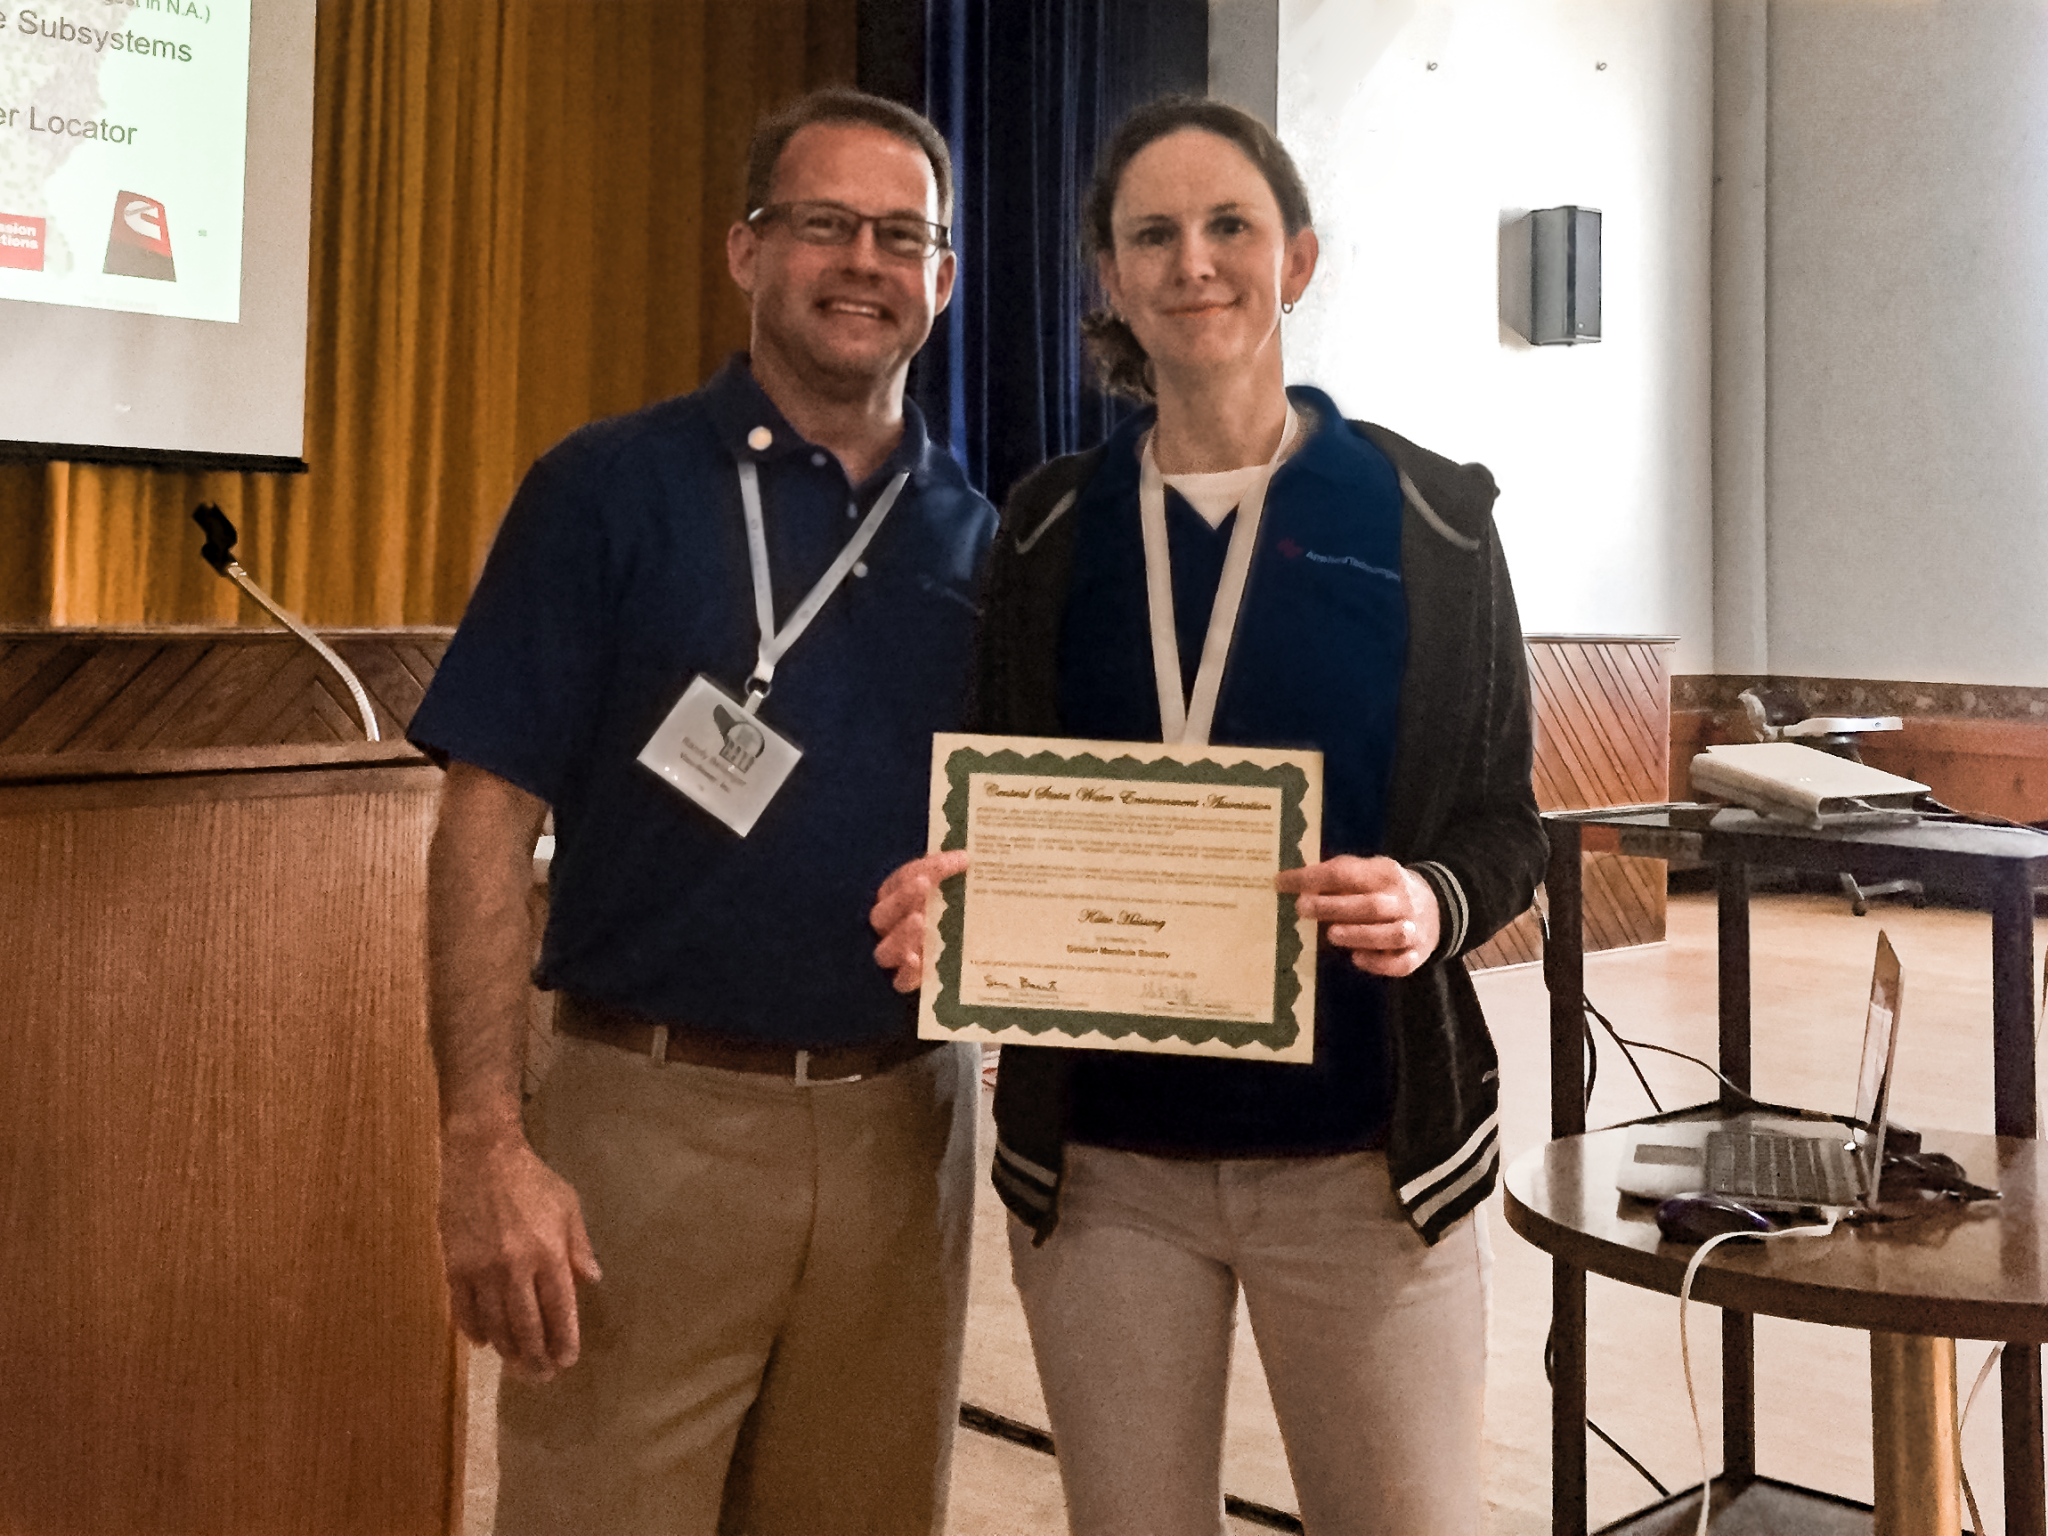 Katie Hassing receiving the Golden Manhole Society Award